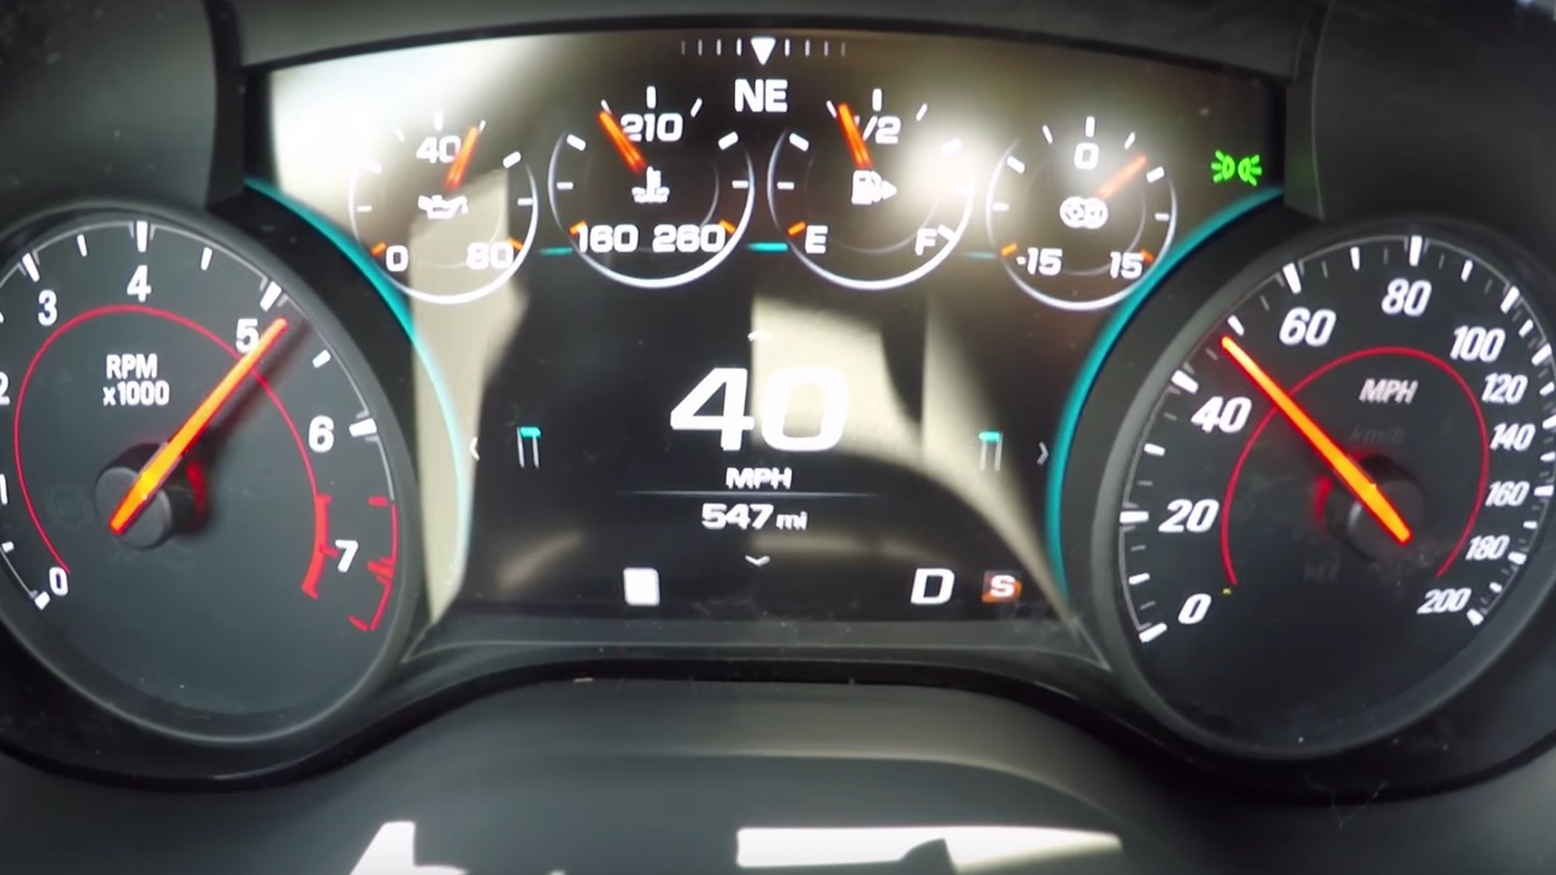 Watch A Stock 2017 Chevy Camaro Zl1 Run 0 60 In 3 6 Seconds Then Hit 180 Mph